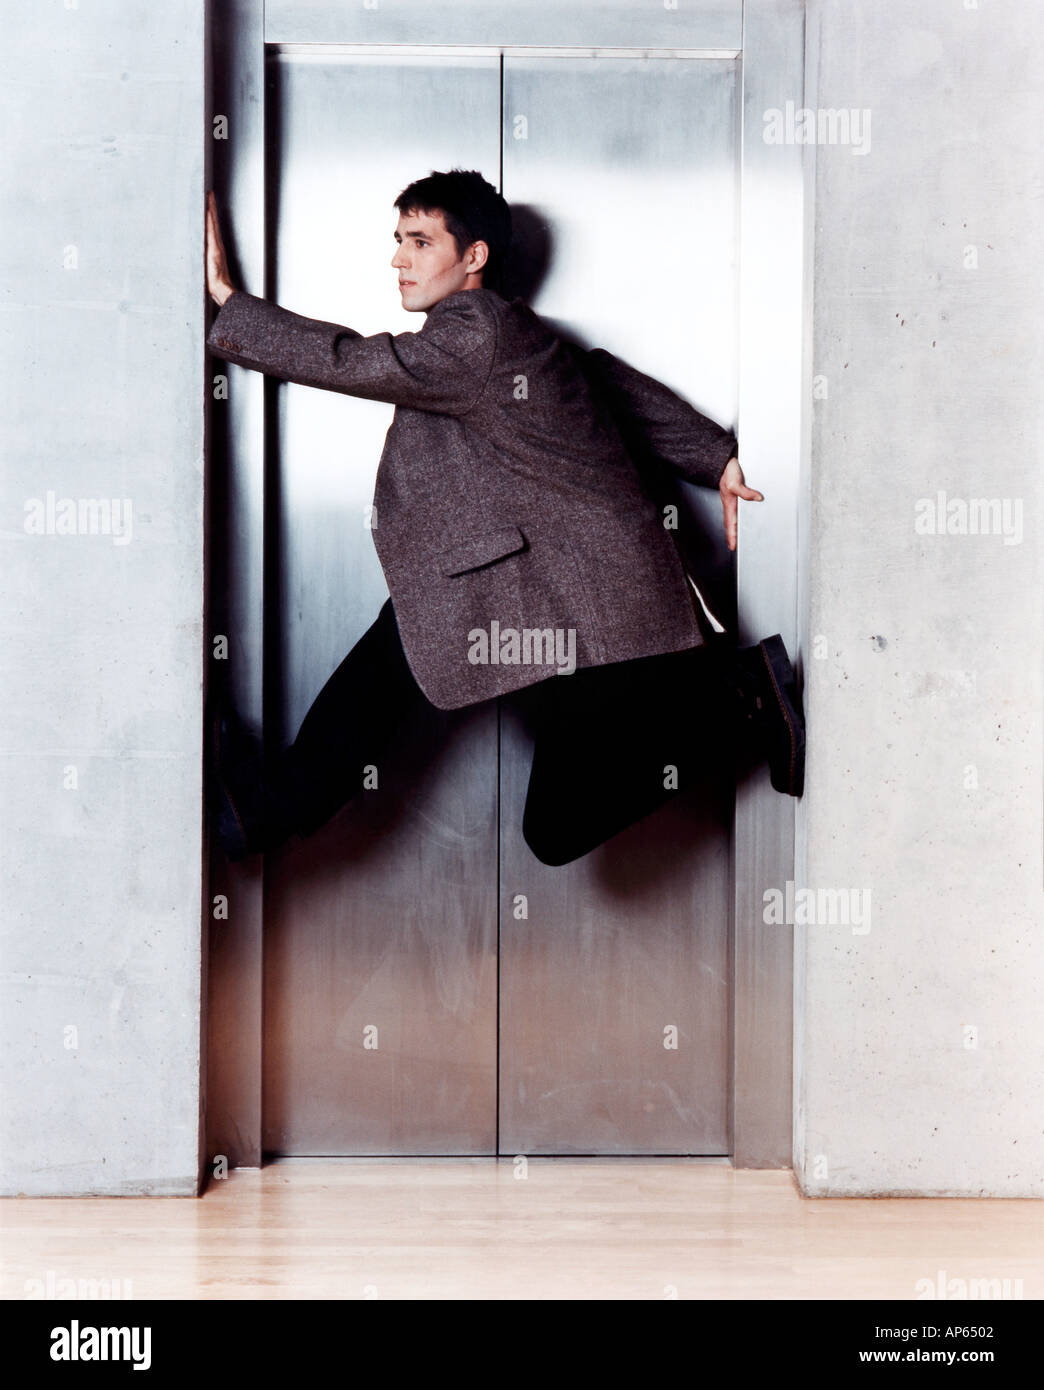 man in elevator door - Stock Image